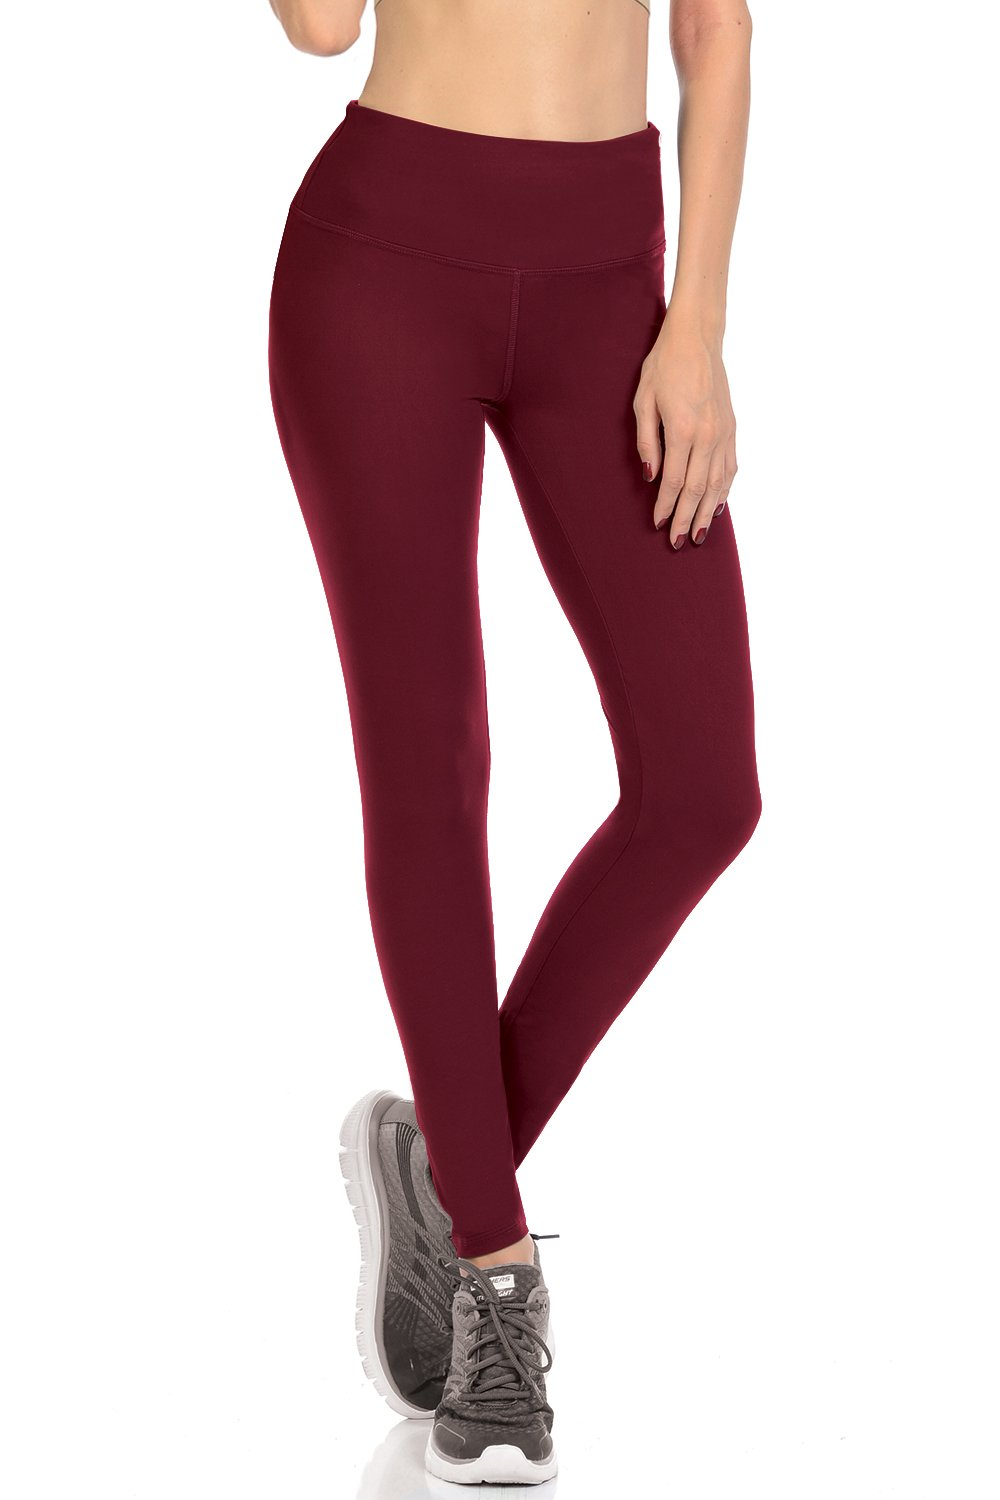 Burgundy Leggings With Hidden Pockets